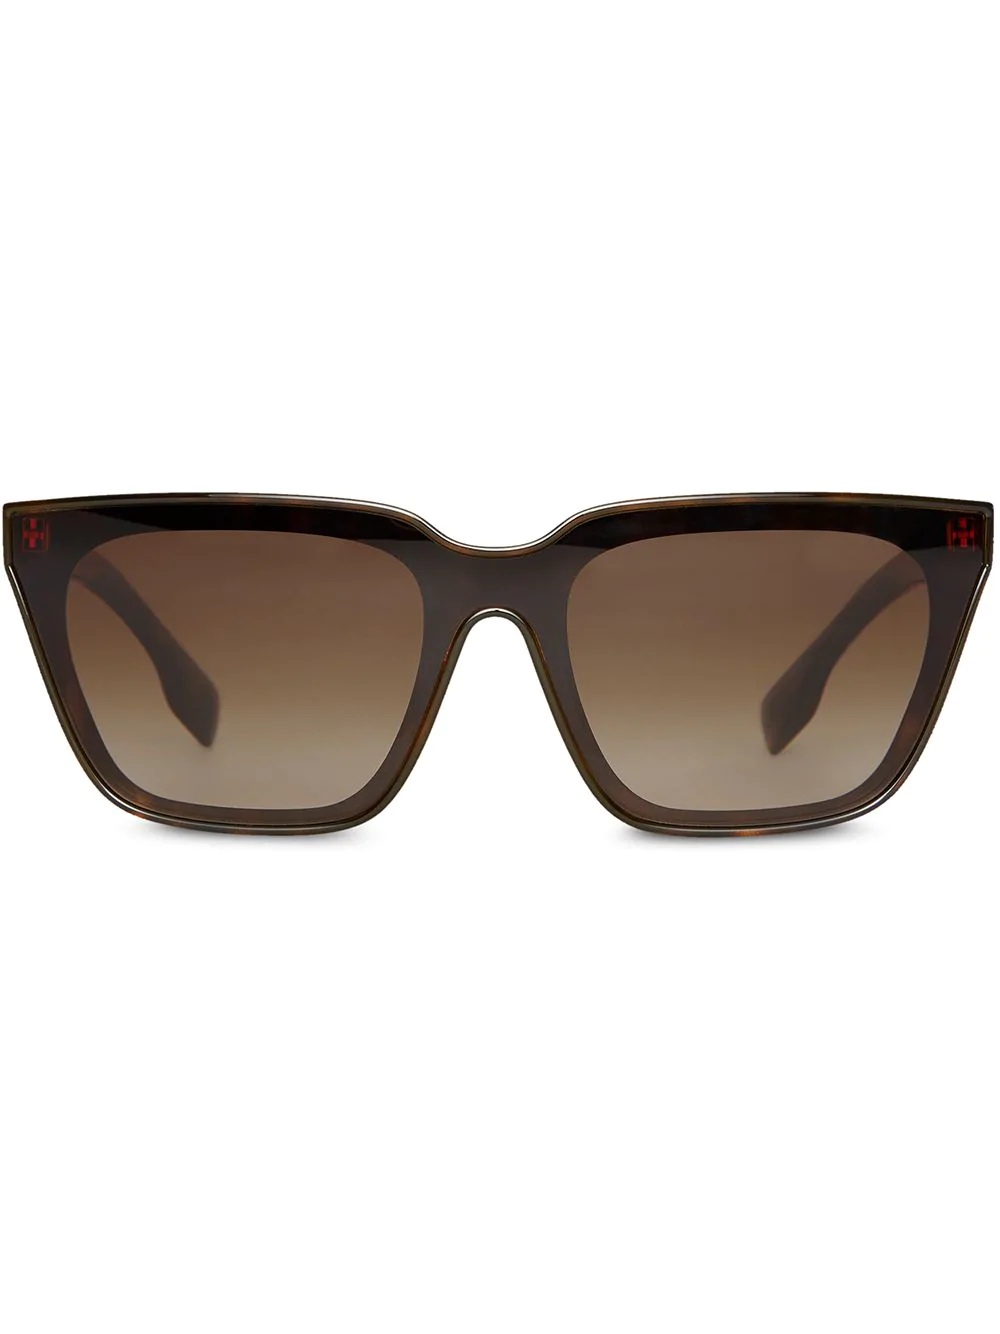 a8be93766ad Burberry Eyewear Square Frame Shield Sunglasses - Brown